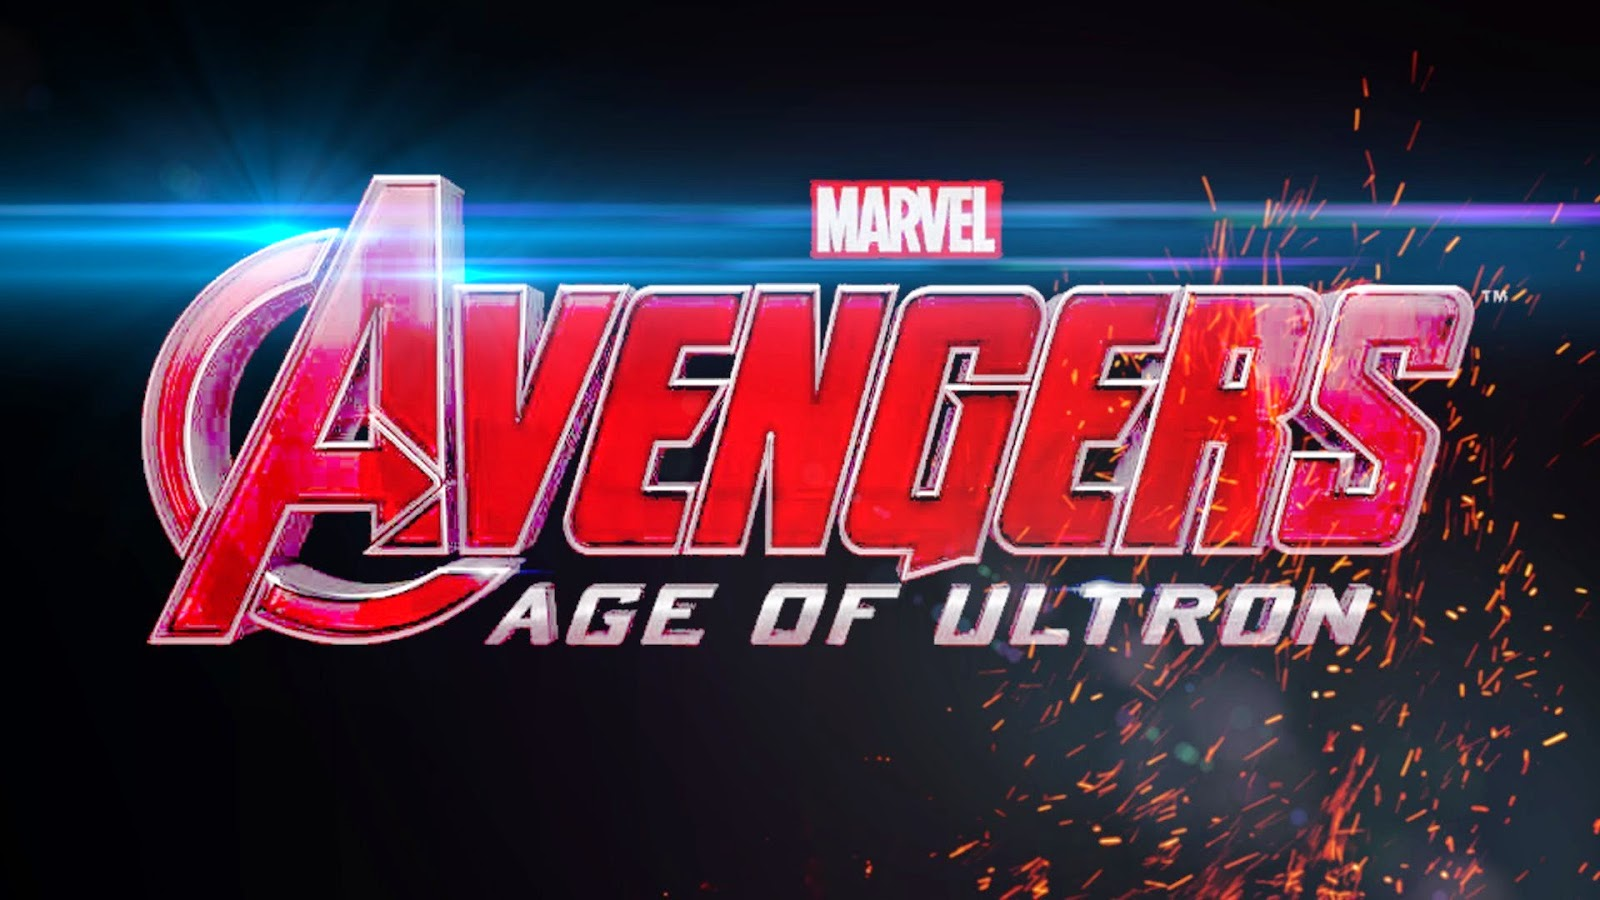 Age Of Ultron HD Wallpaper